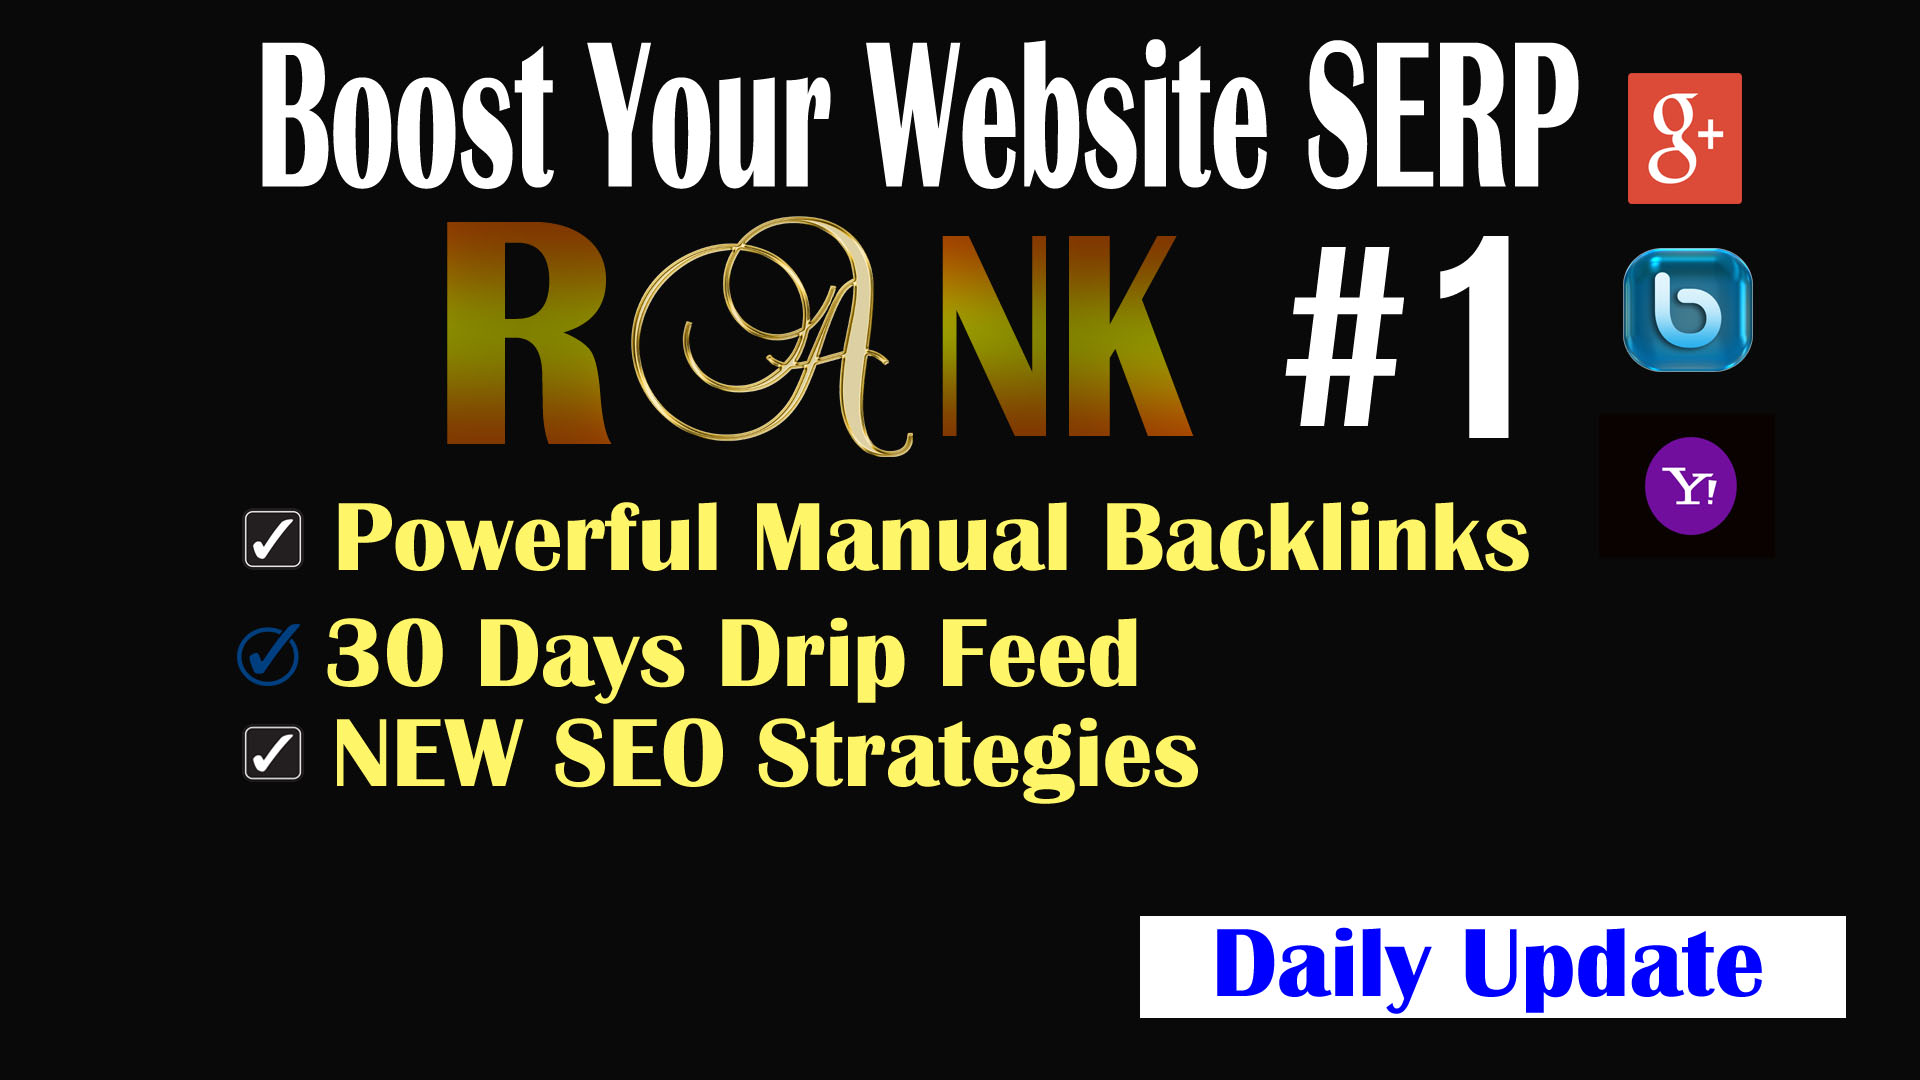 Rank - SUPER QUALITY Ranking to Skyrocket Website FAST with BONUS - Updated Manual Authority links